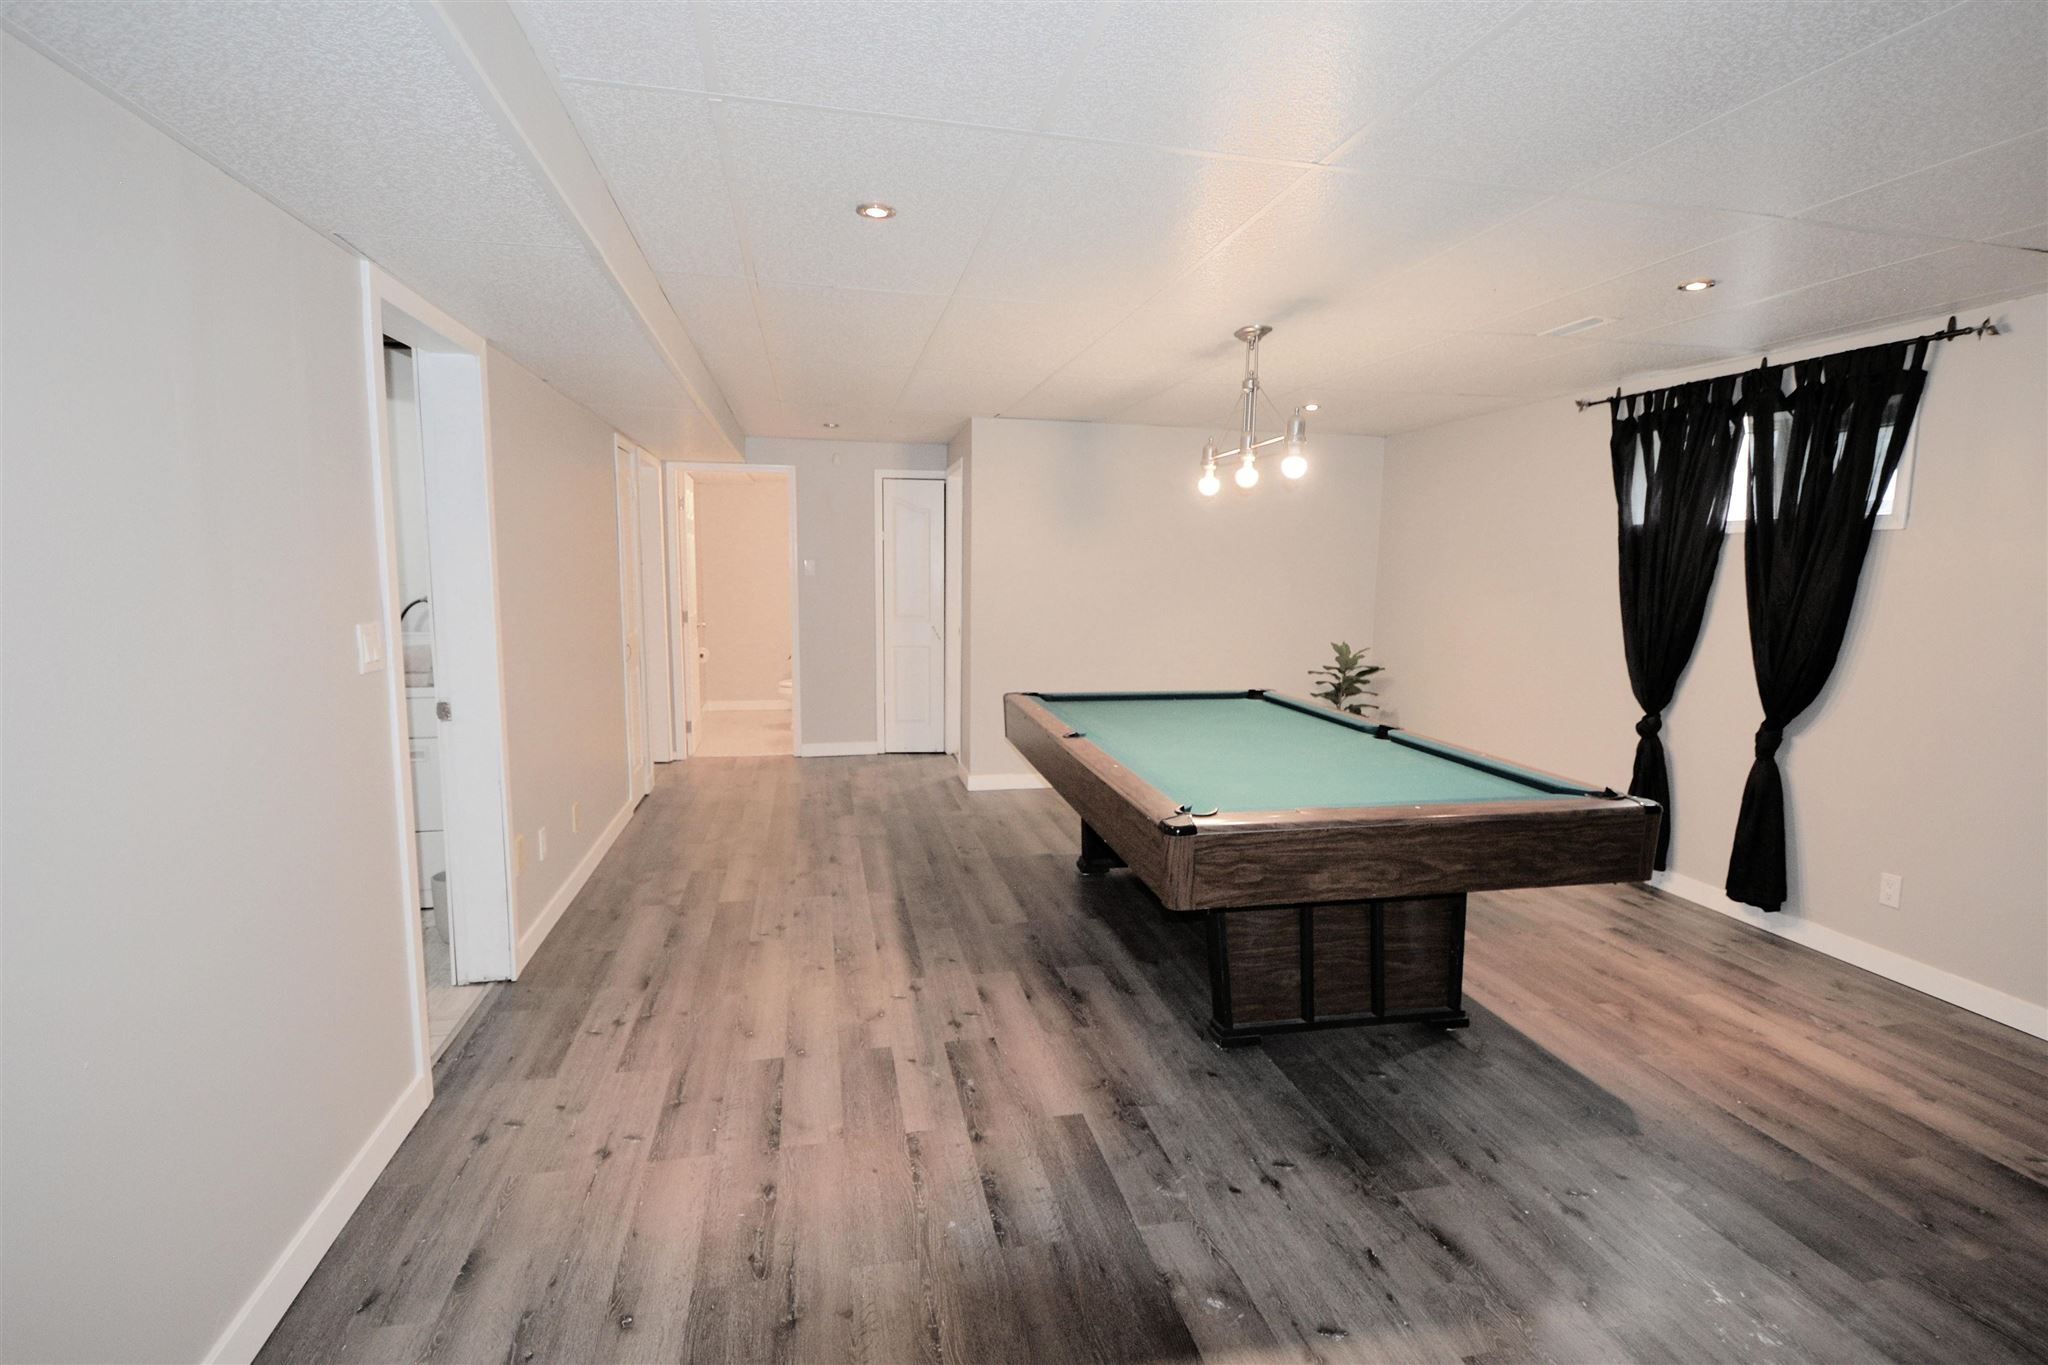 Photo 19: Photos: 2045 CROFT Road in Prince George: Ingala House for sale (PG City North (Zone 73))  : MLS®# R2600190